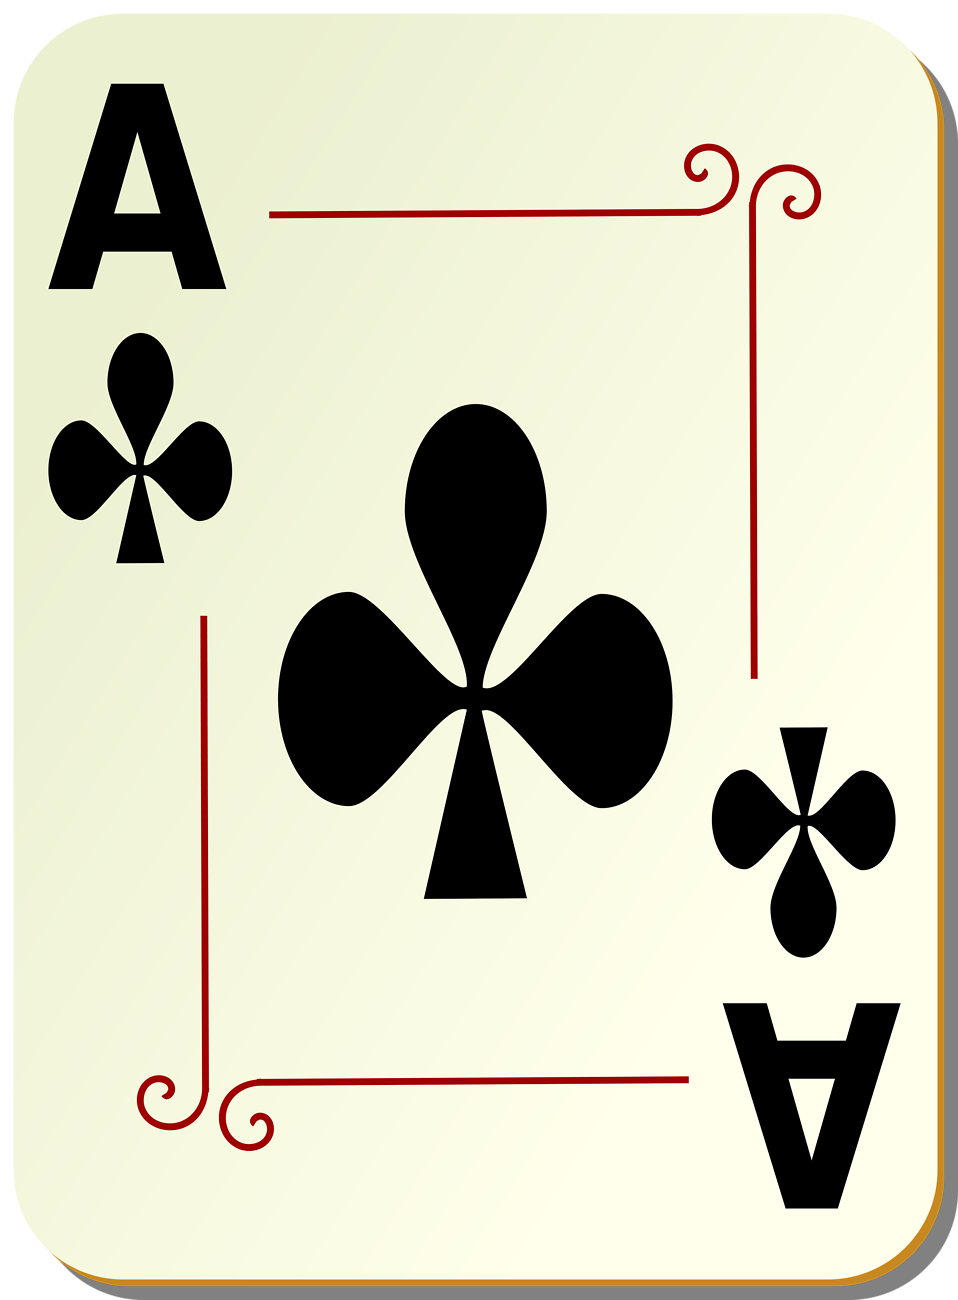 Aces playing cards clipart.